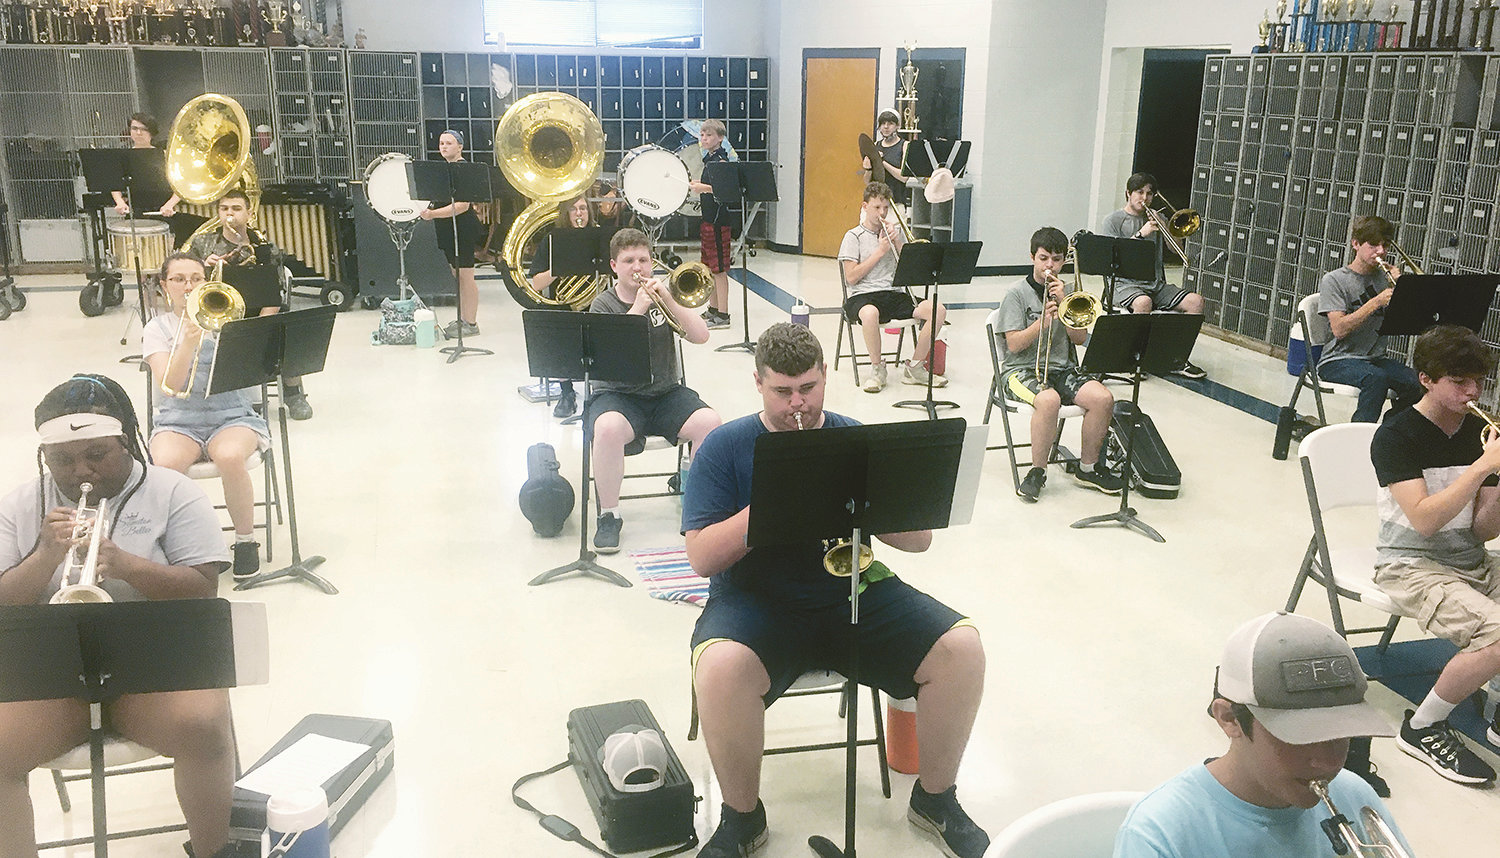 Band students are pictured 6 feet apart during practice at Dora High School.